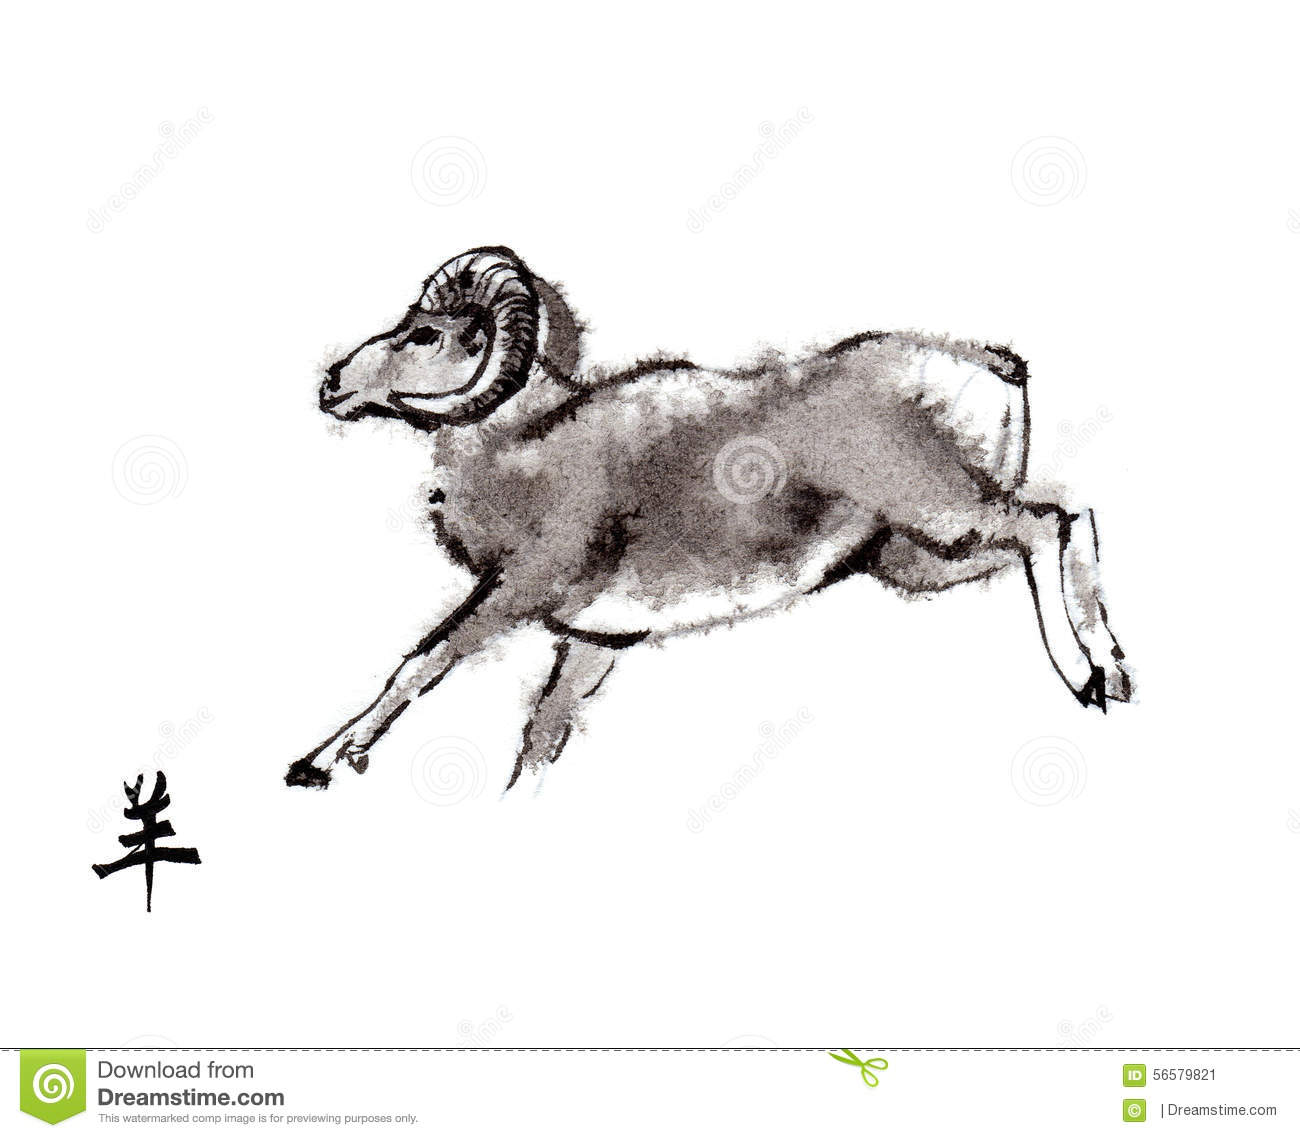 Whole Sign besides Stock Illustration Ram Oriental Ink Painting Sumi E Running Argali Chinese Hieroglyph Goat Symbol New Year Goat Sheep Image56579821 in addition Seppo Ahti Horoscope besides Witchcraft Symbols And Signs additionally Frantisek Planicka Horoscope. on new astrological sign at